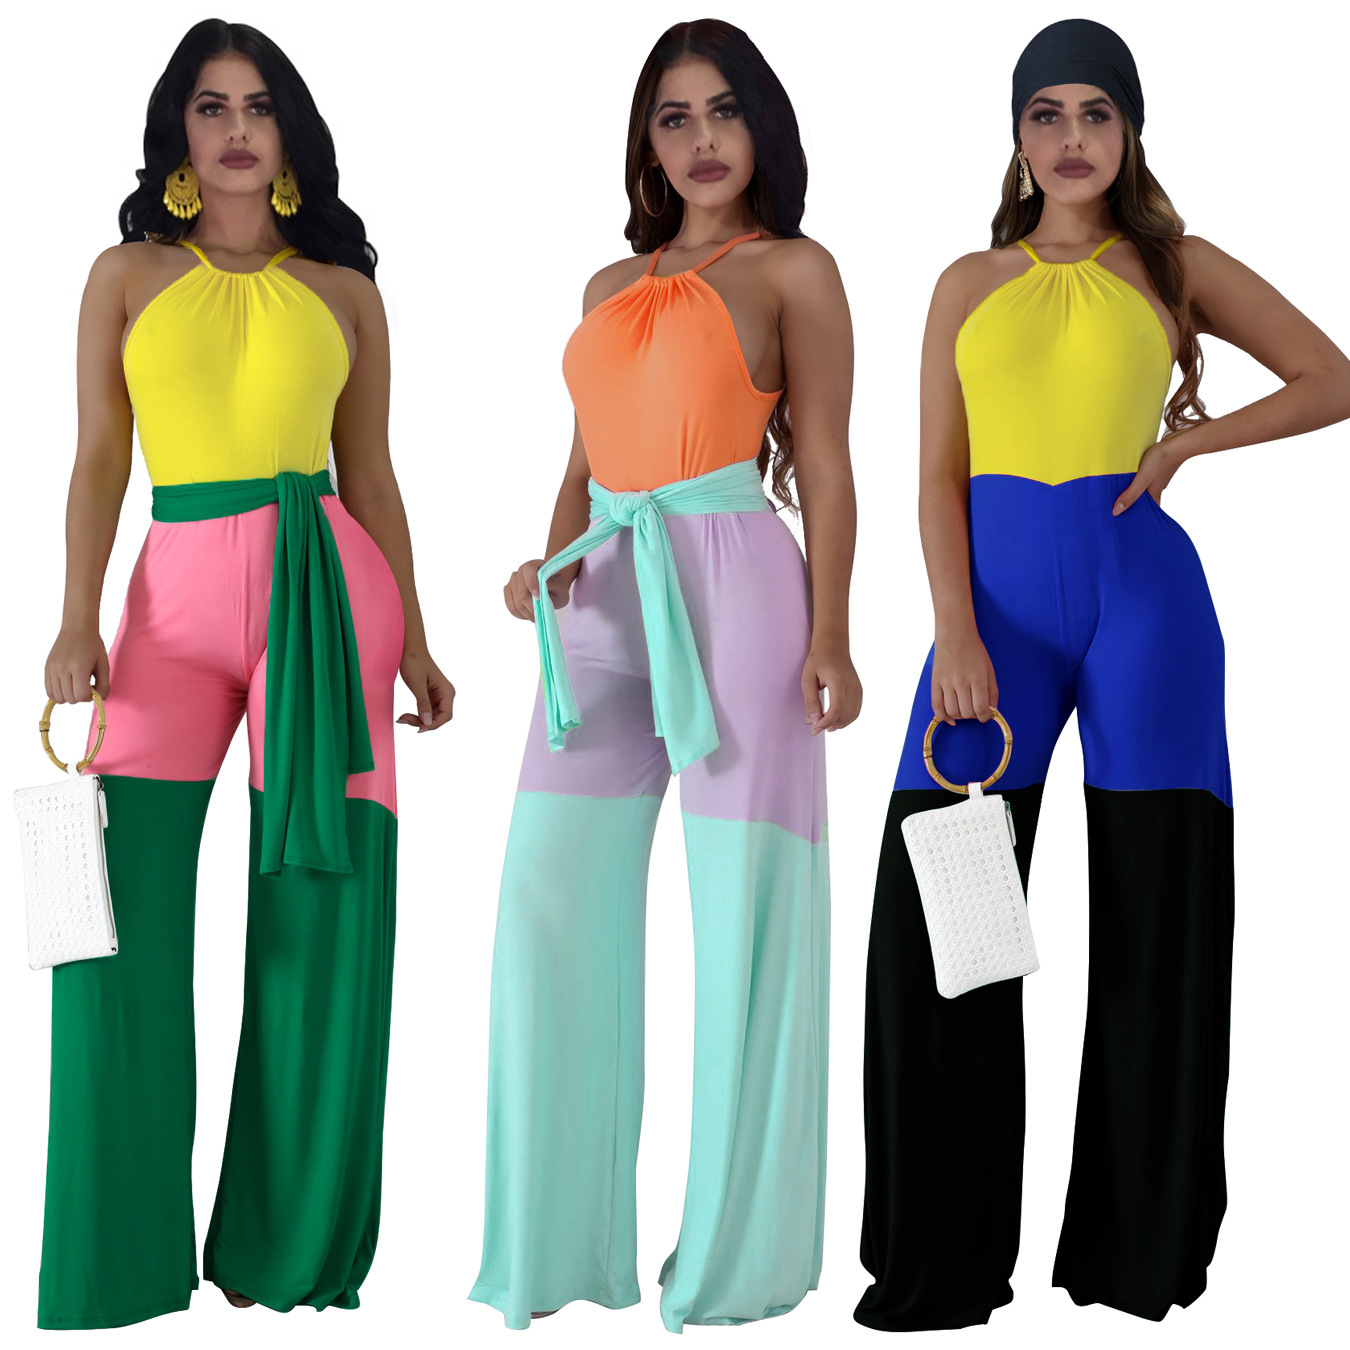 Fashion Casual Halter Three-color Stitching Jumpsuit Patchwork Loose Long Pants Yellow Green Orange S-XXL New Arrival